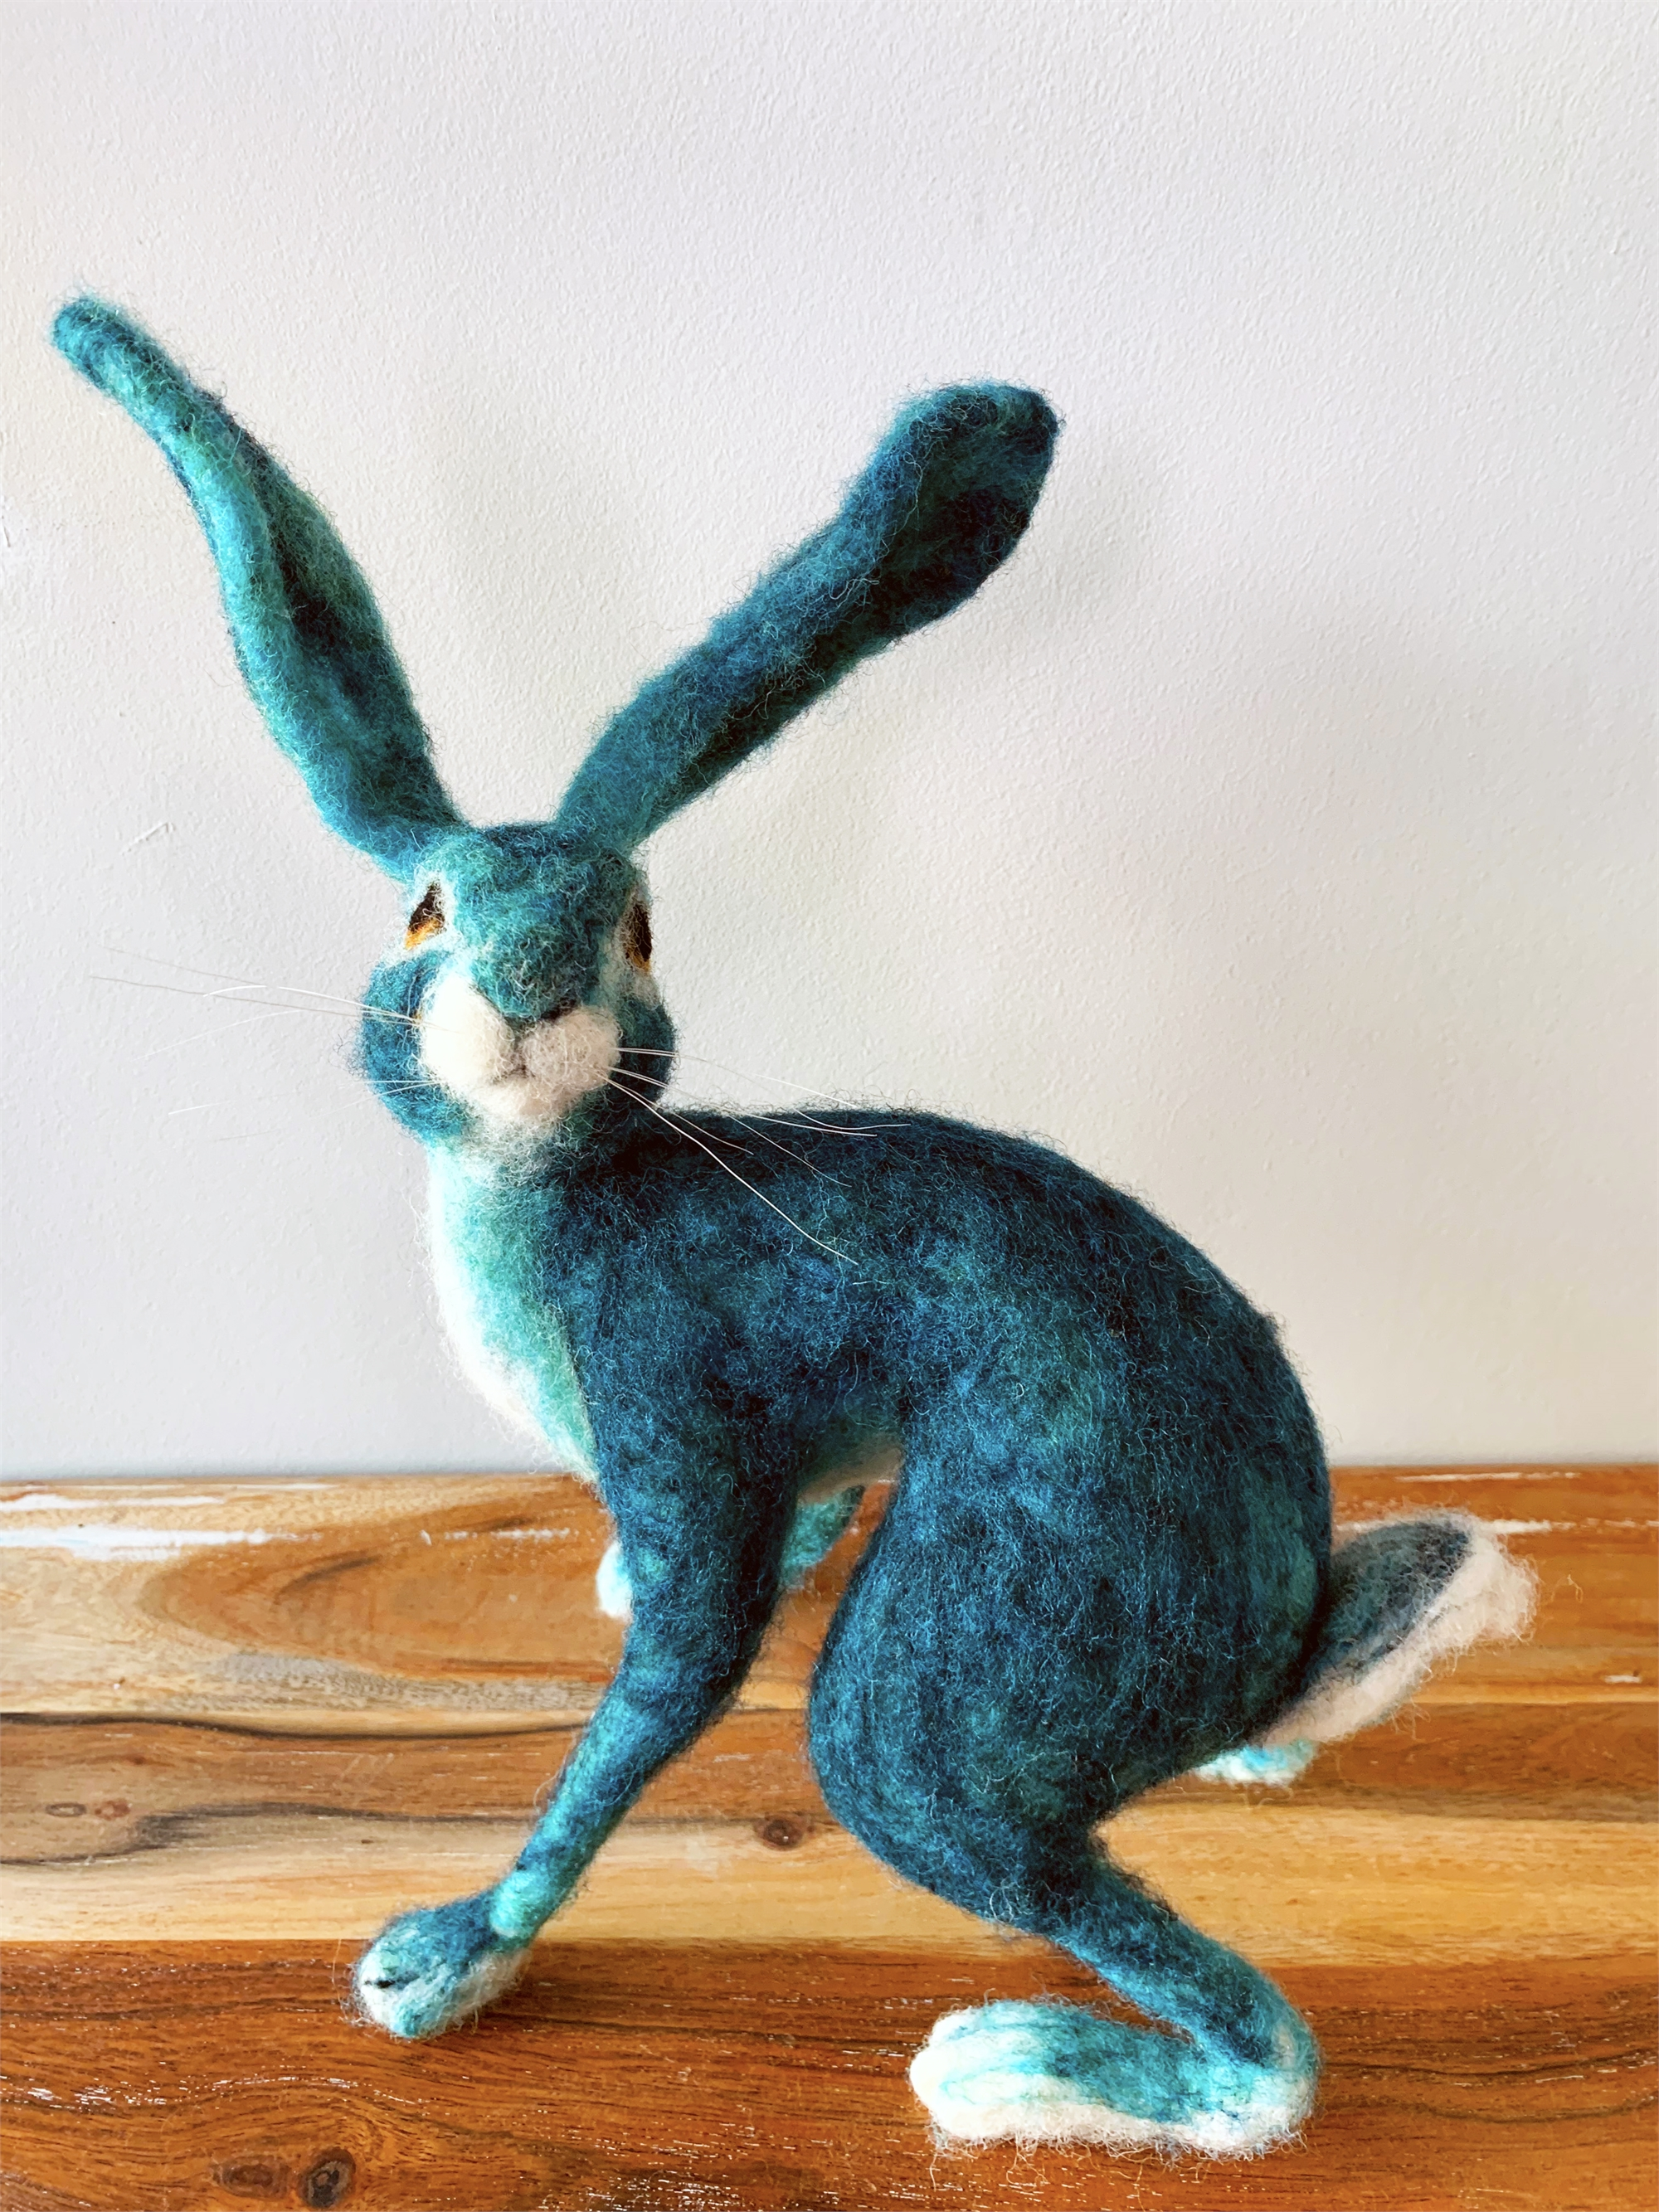 Turquoise Blue Hare by Di Haswell